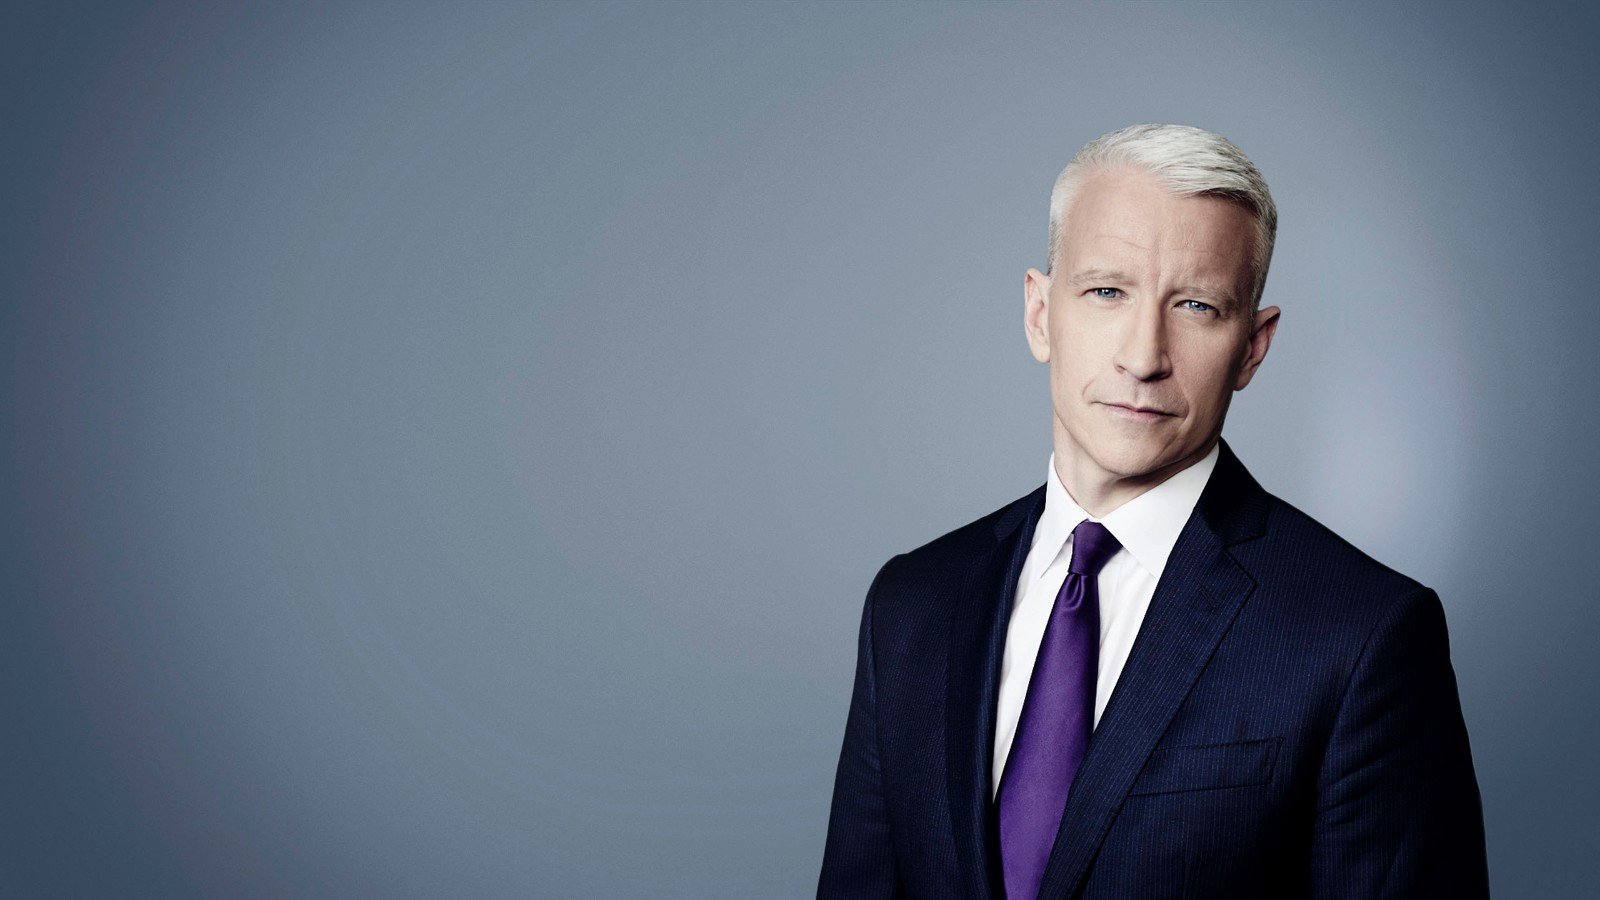 CNN Profiles - Anderson Cooper - CNN anchor - CNN